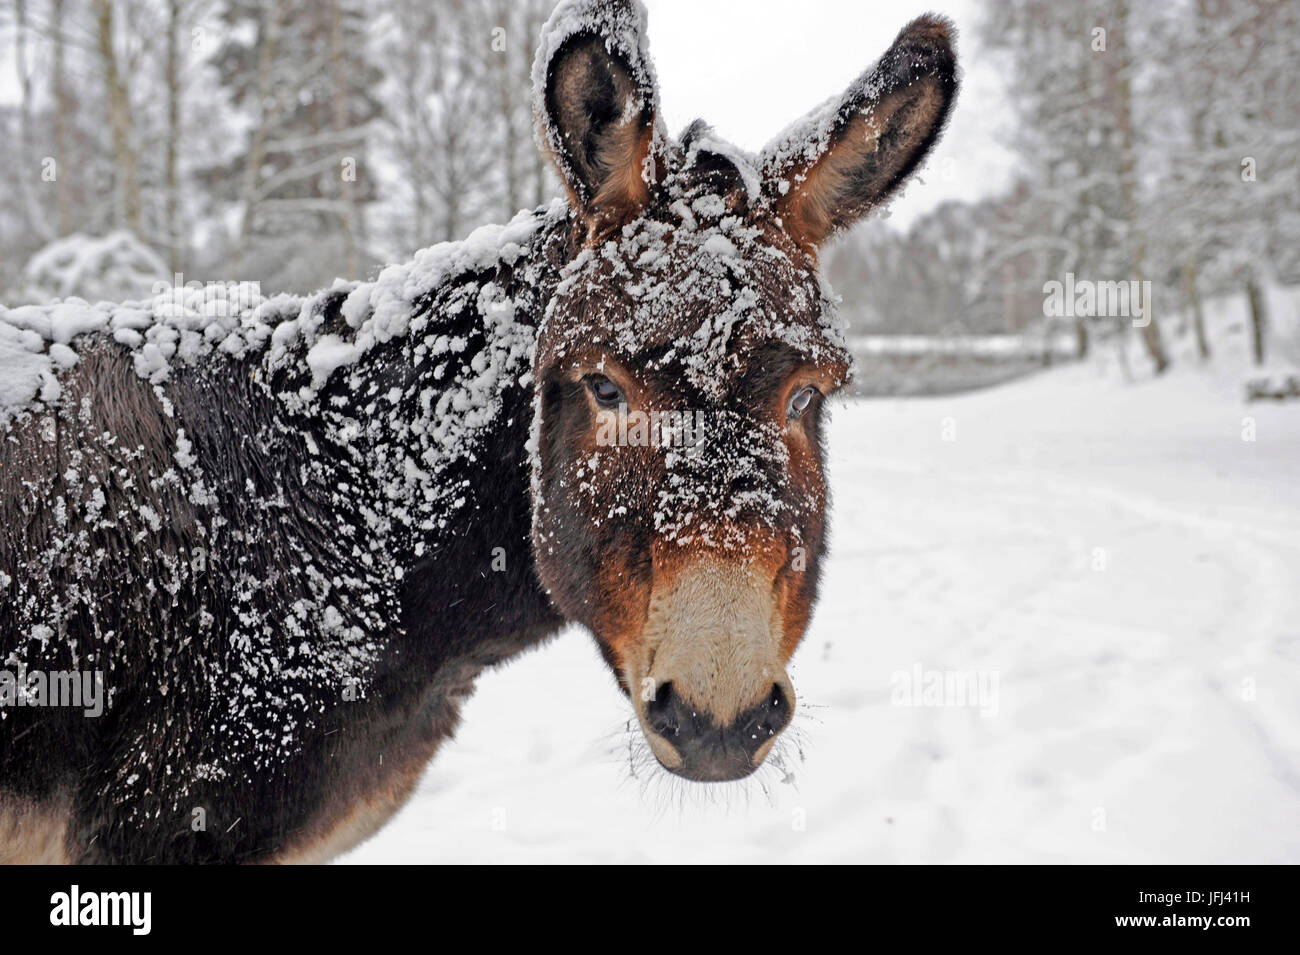 A brown donkey commited with snow on wintry pasture - Stock Image